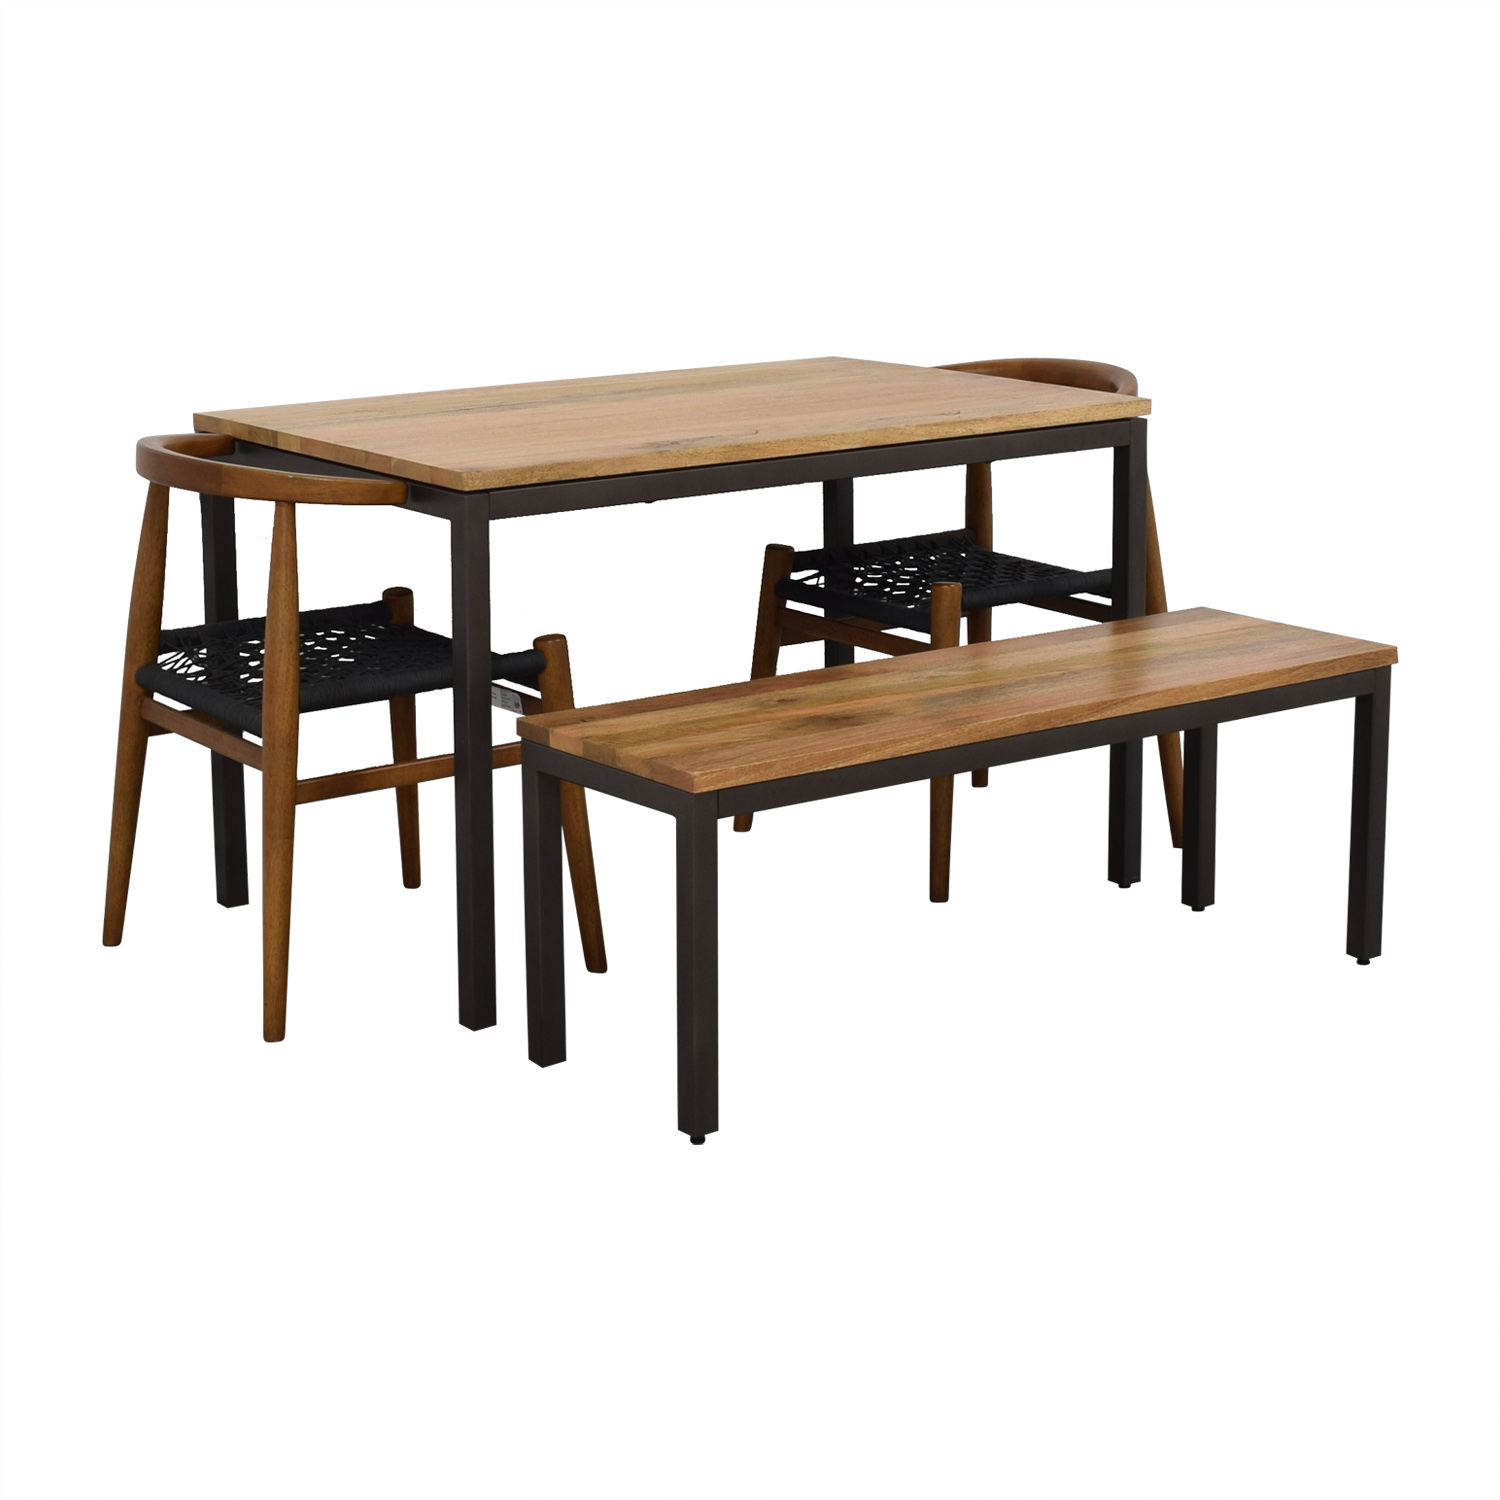 West Elm Dining Set with Chairs and Box Frame Dining Bench West Elm